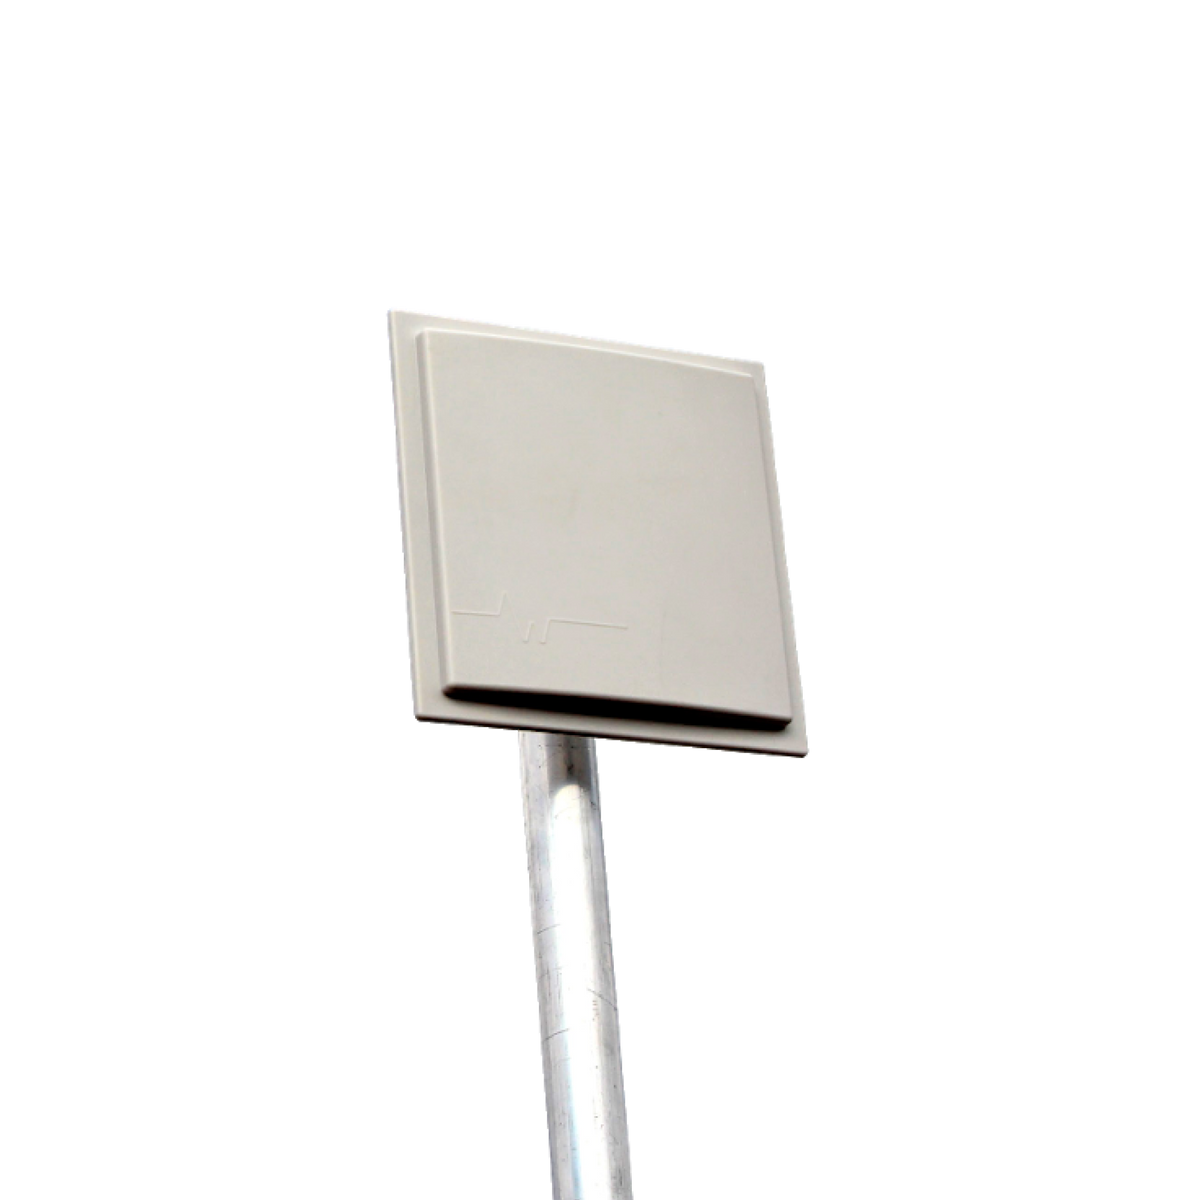 14dbi 2.4Ghz Long Range Antenna Panel Directional Antenna for WiFi or Router